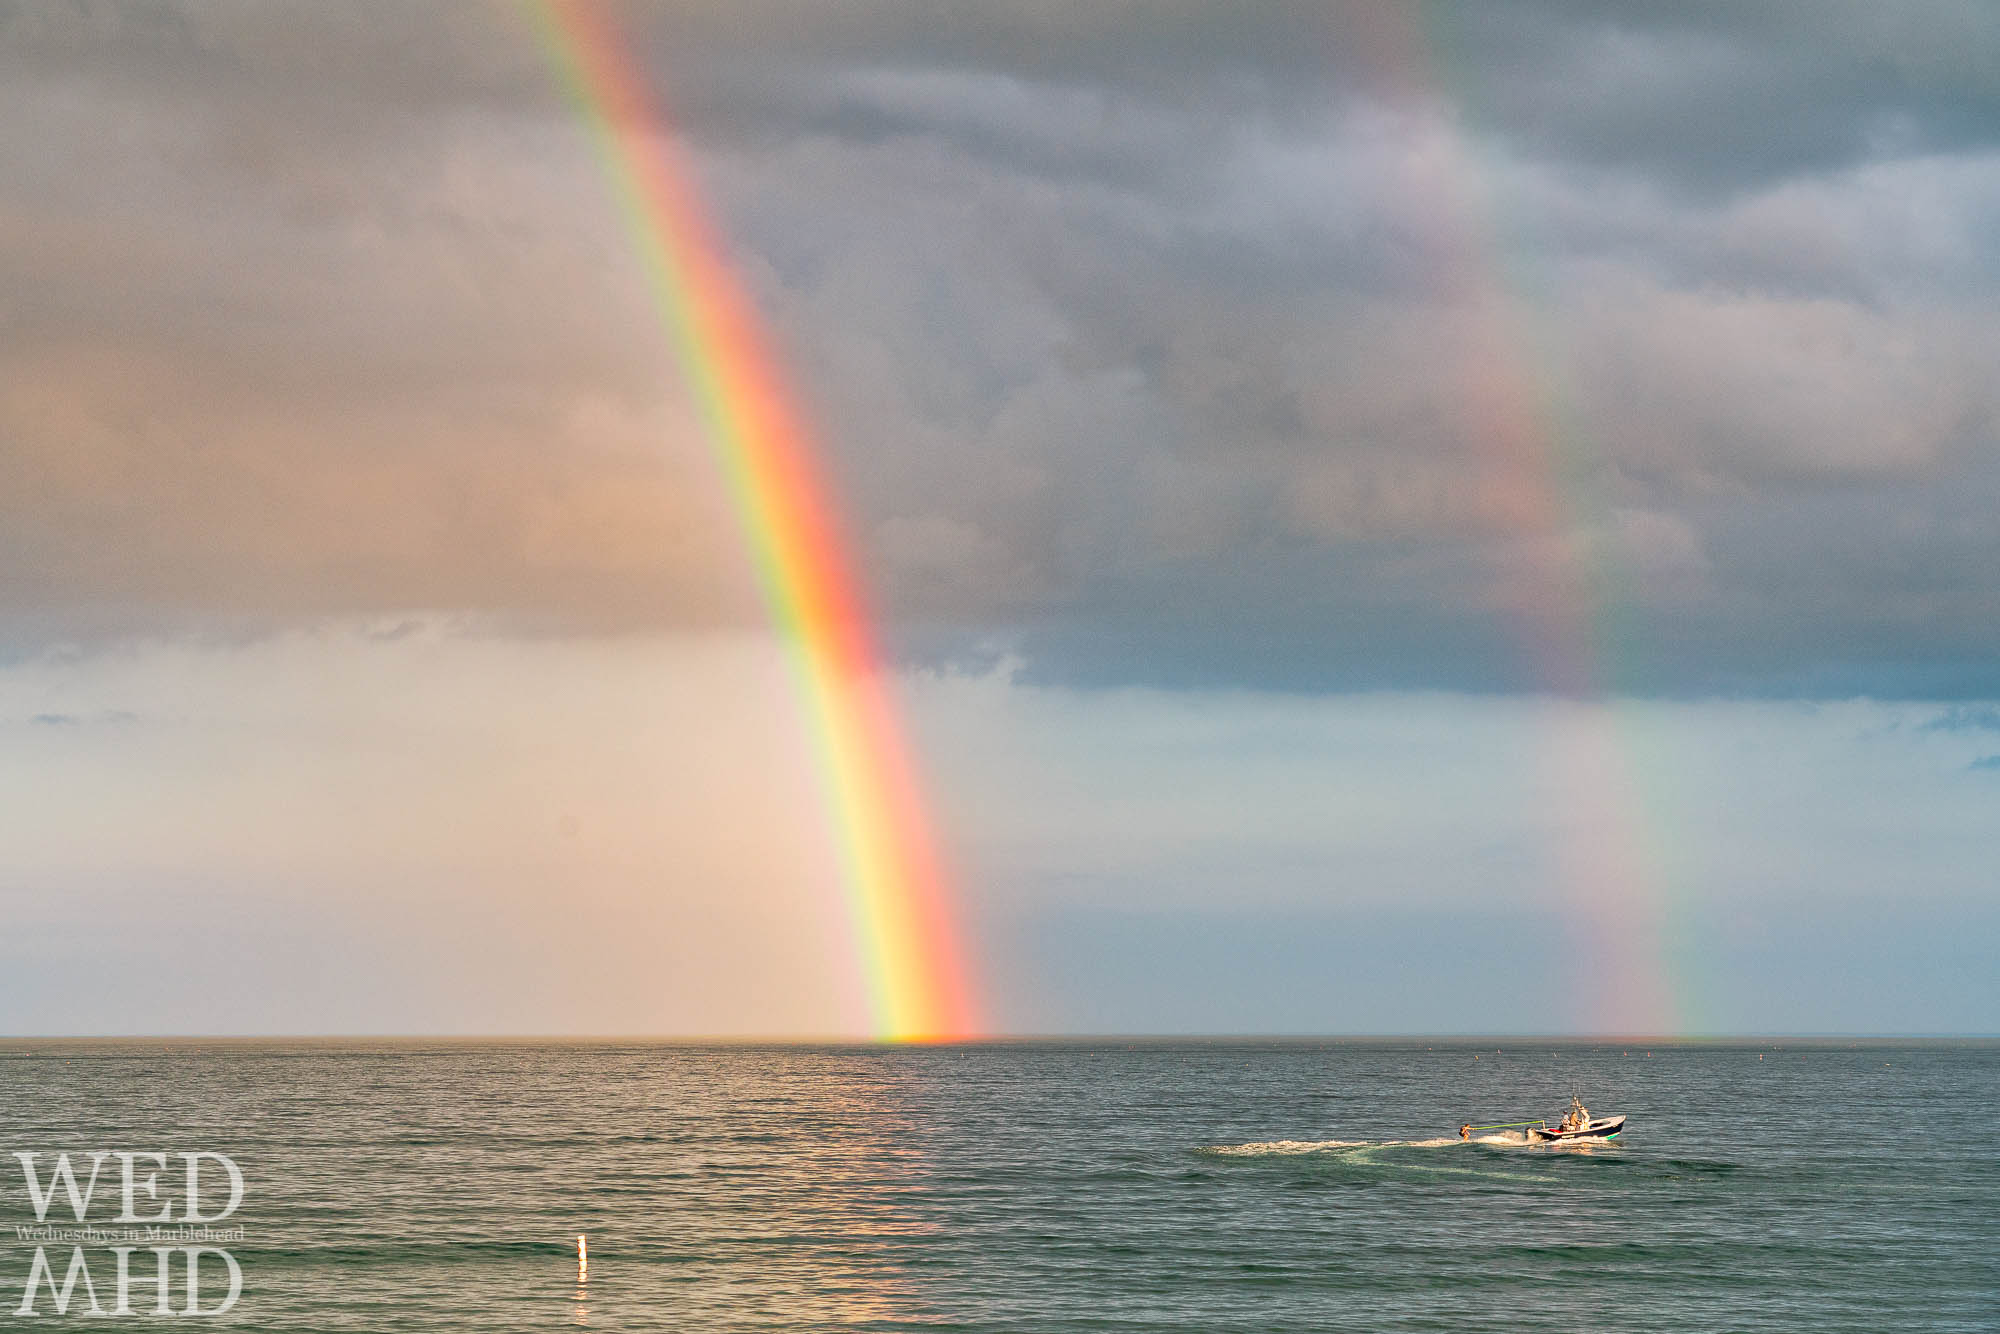 A family waterskis at the end of the rainbow on a late June evening off Devereux Beach in Marblehead